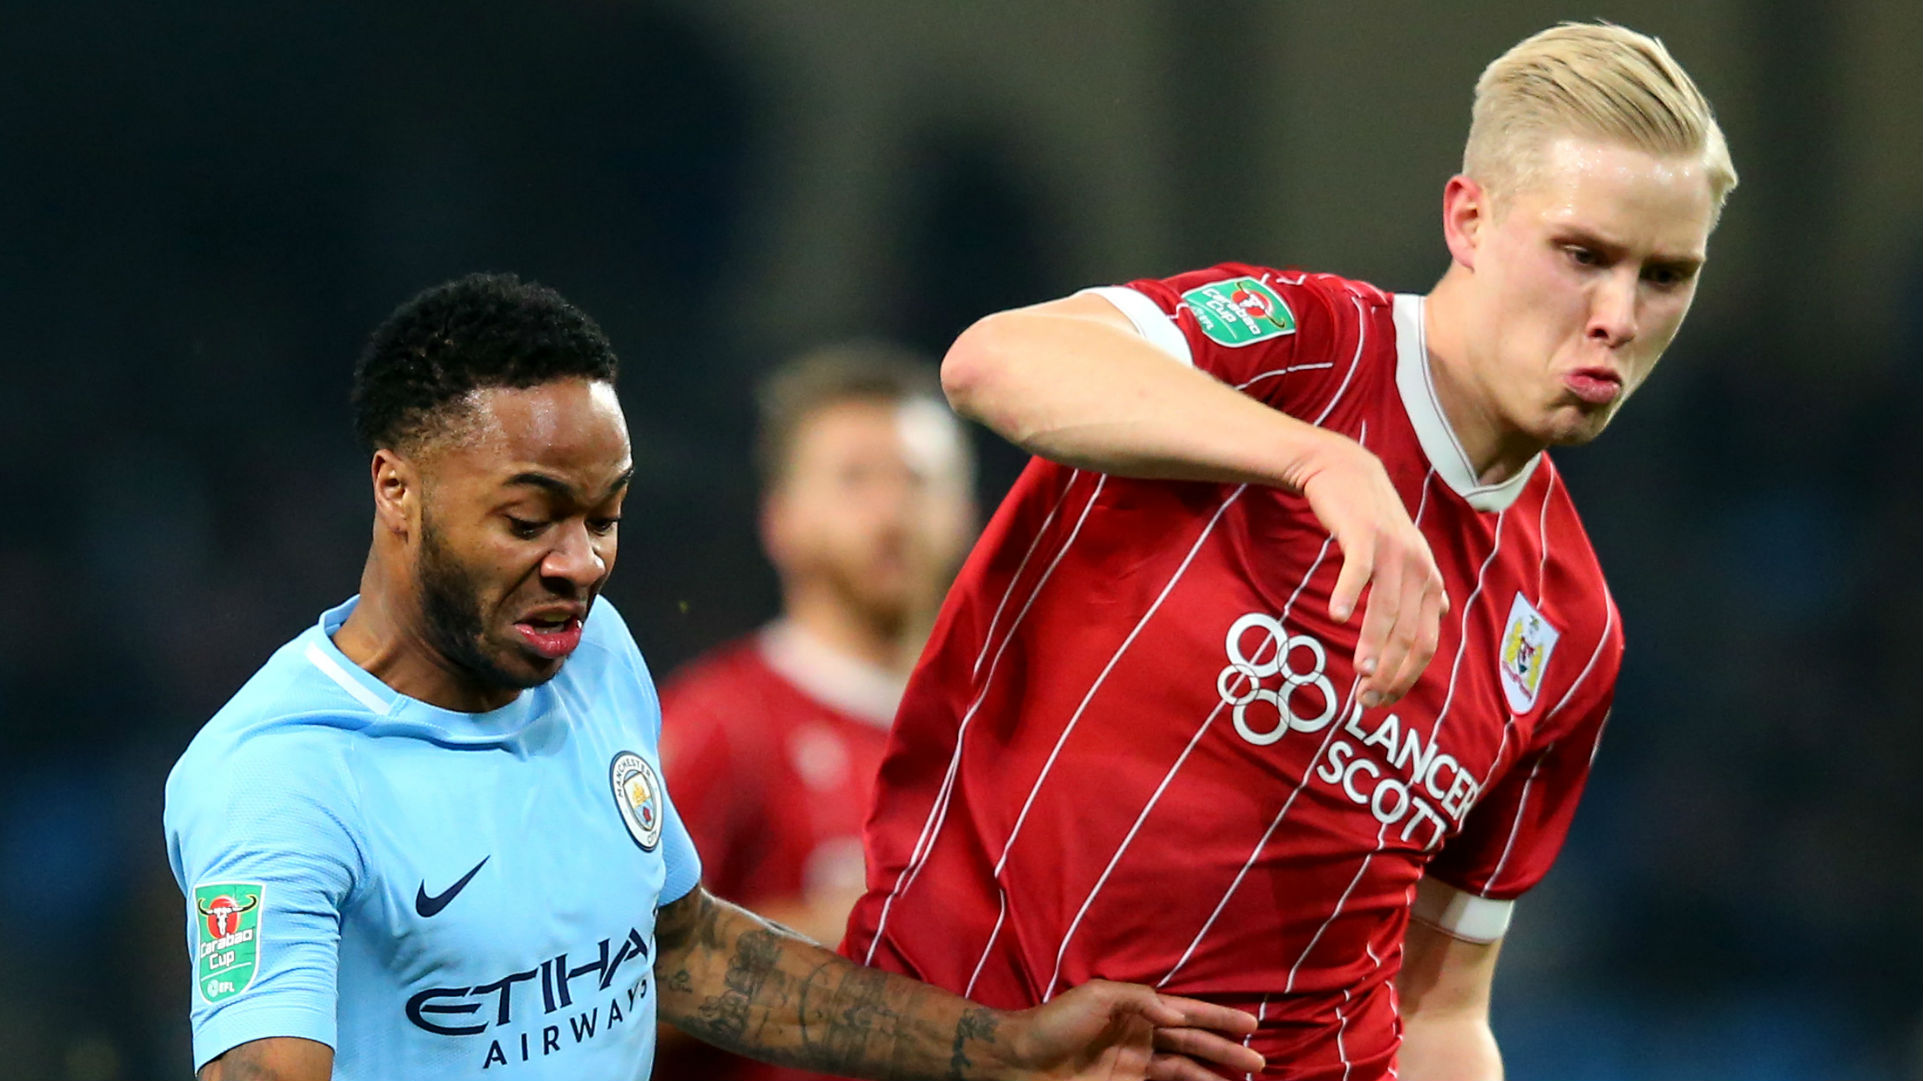 Bristol City v Manchester City Betting Preview: Latest odds, team news, tips and predictions